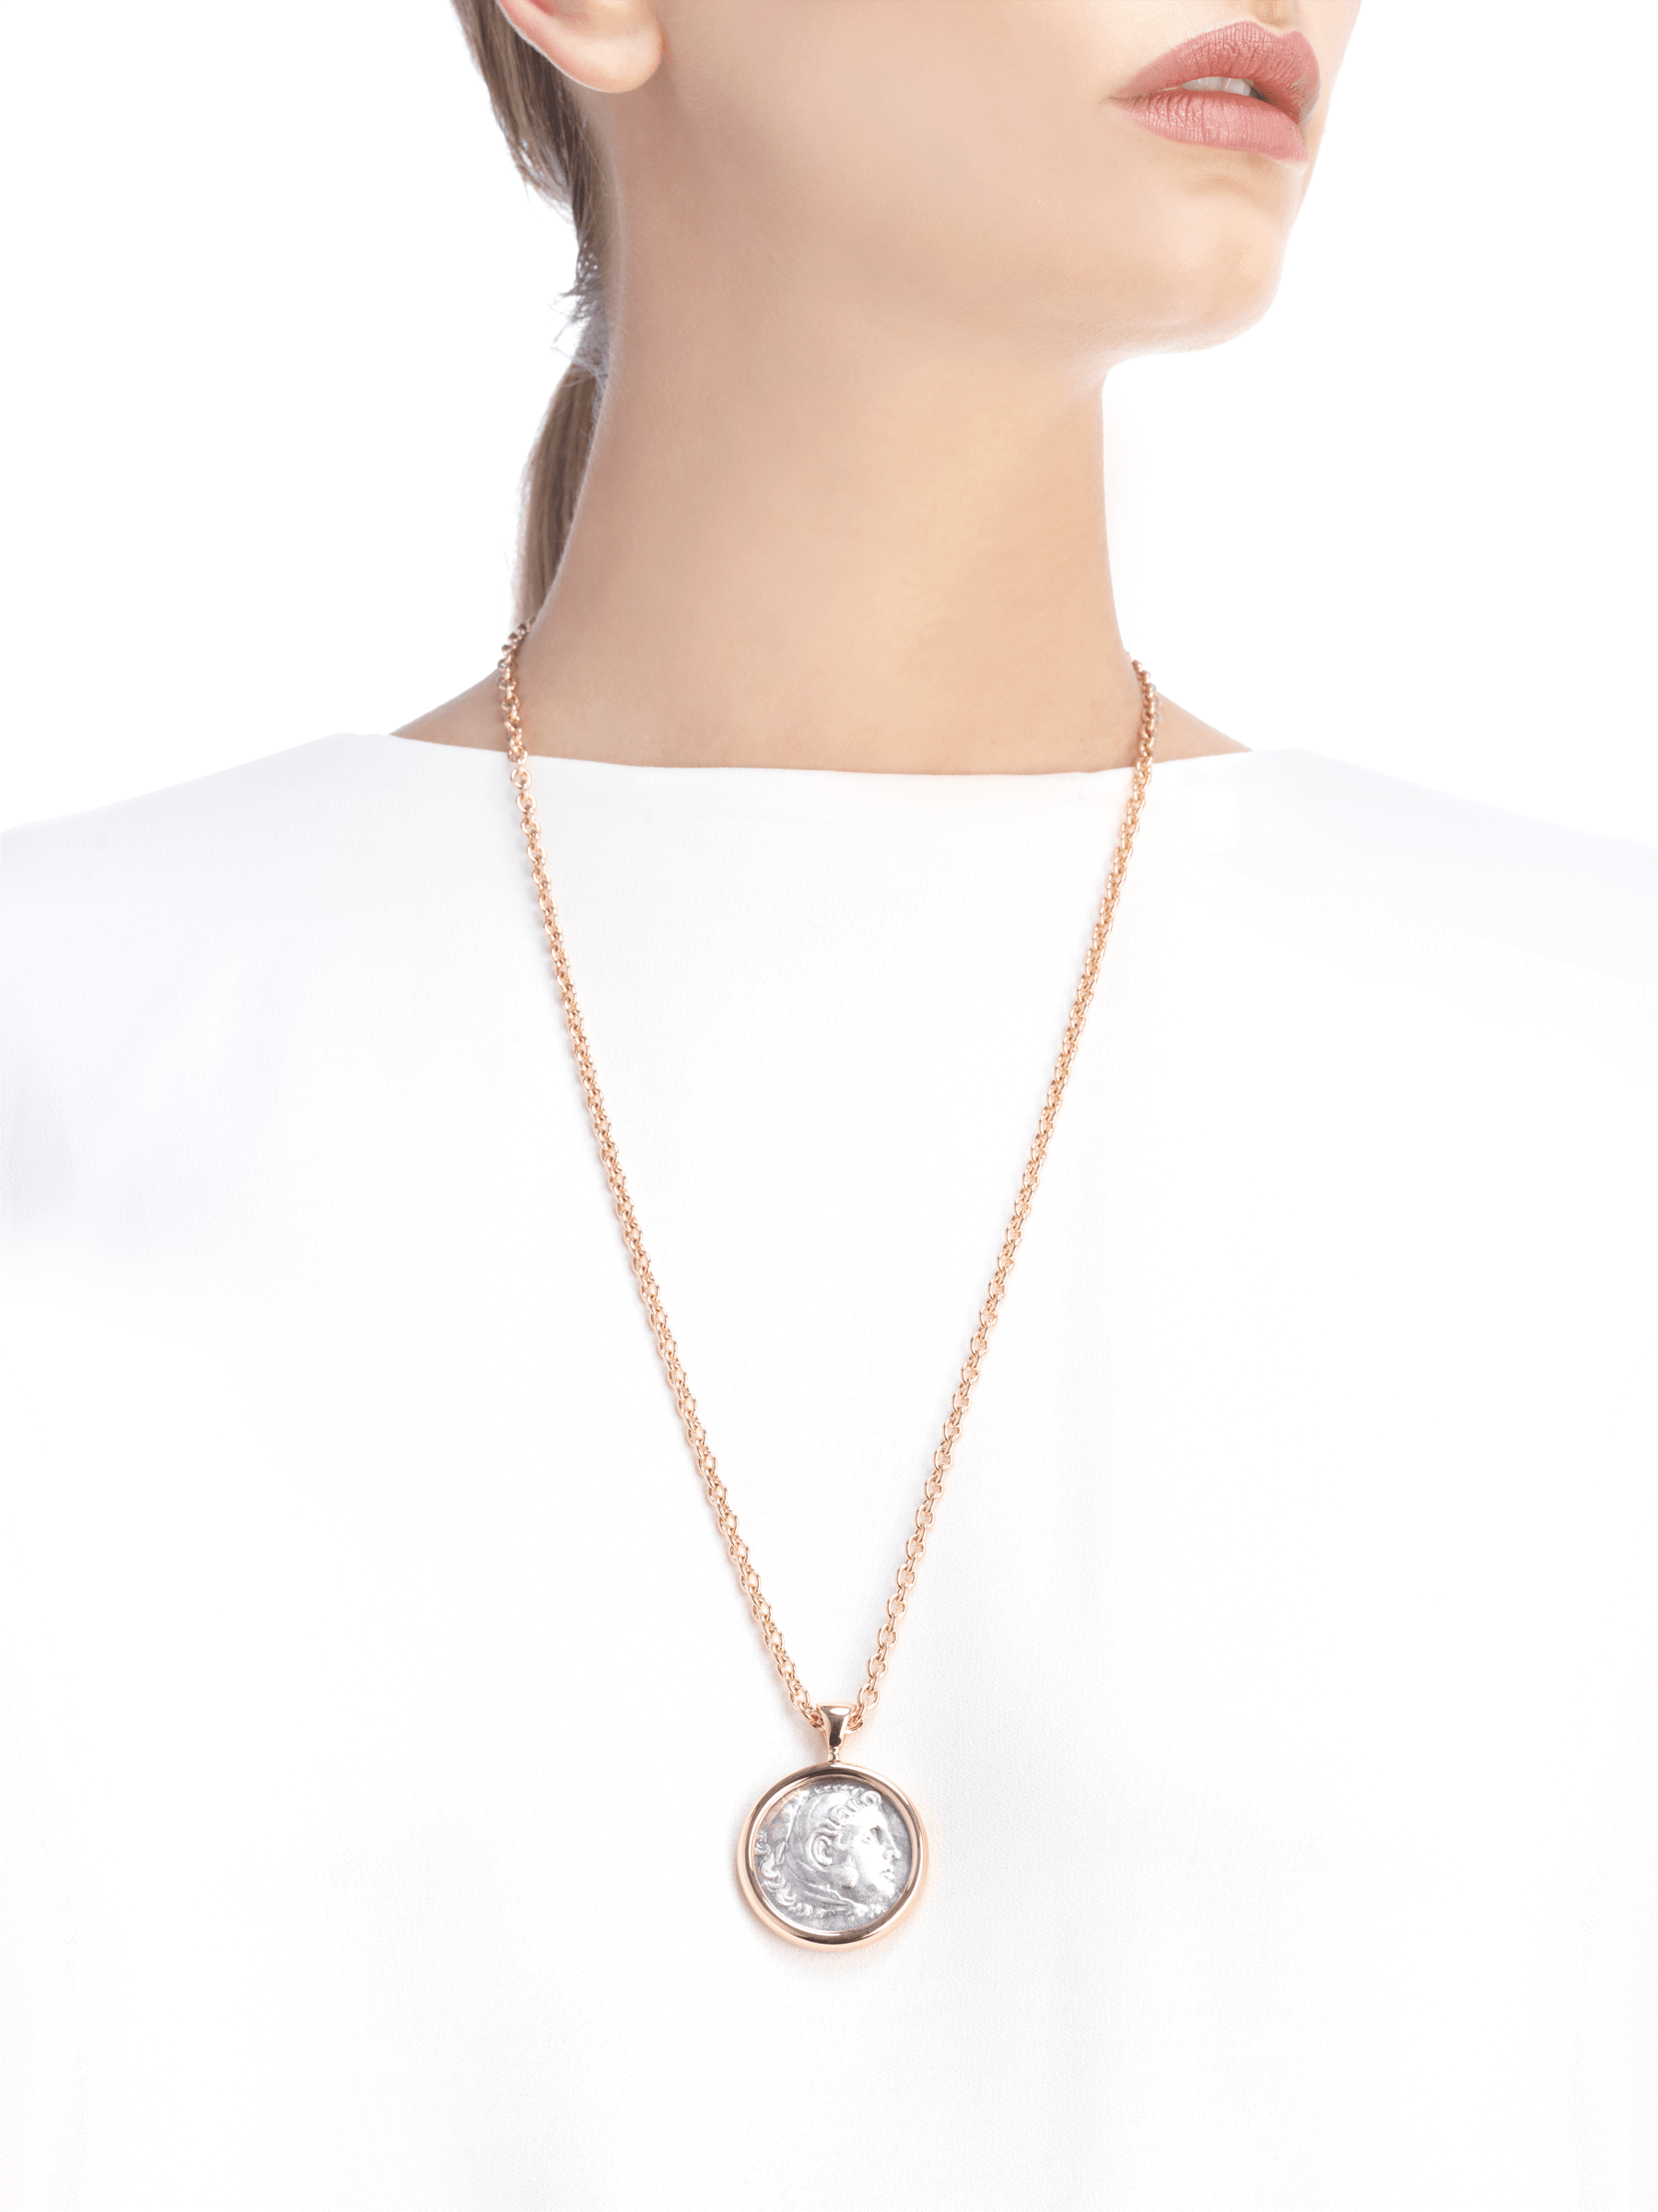 Monete necklace with 18 kt rose gold chain and 18 kt rose gold pendant set with an antique coin 347707 image 5